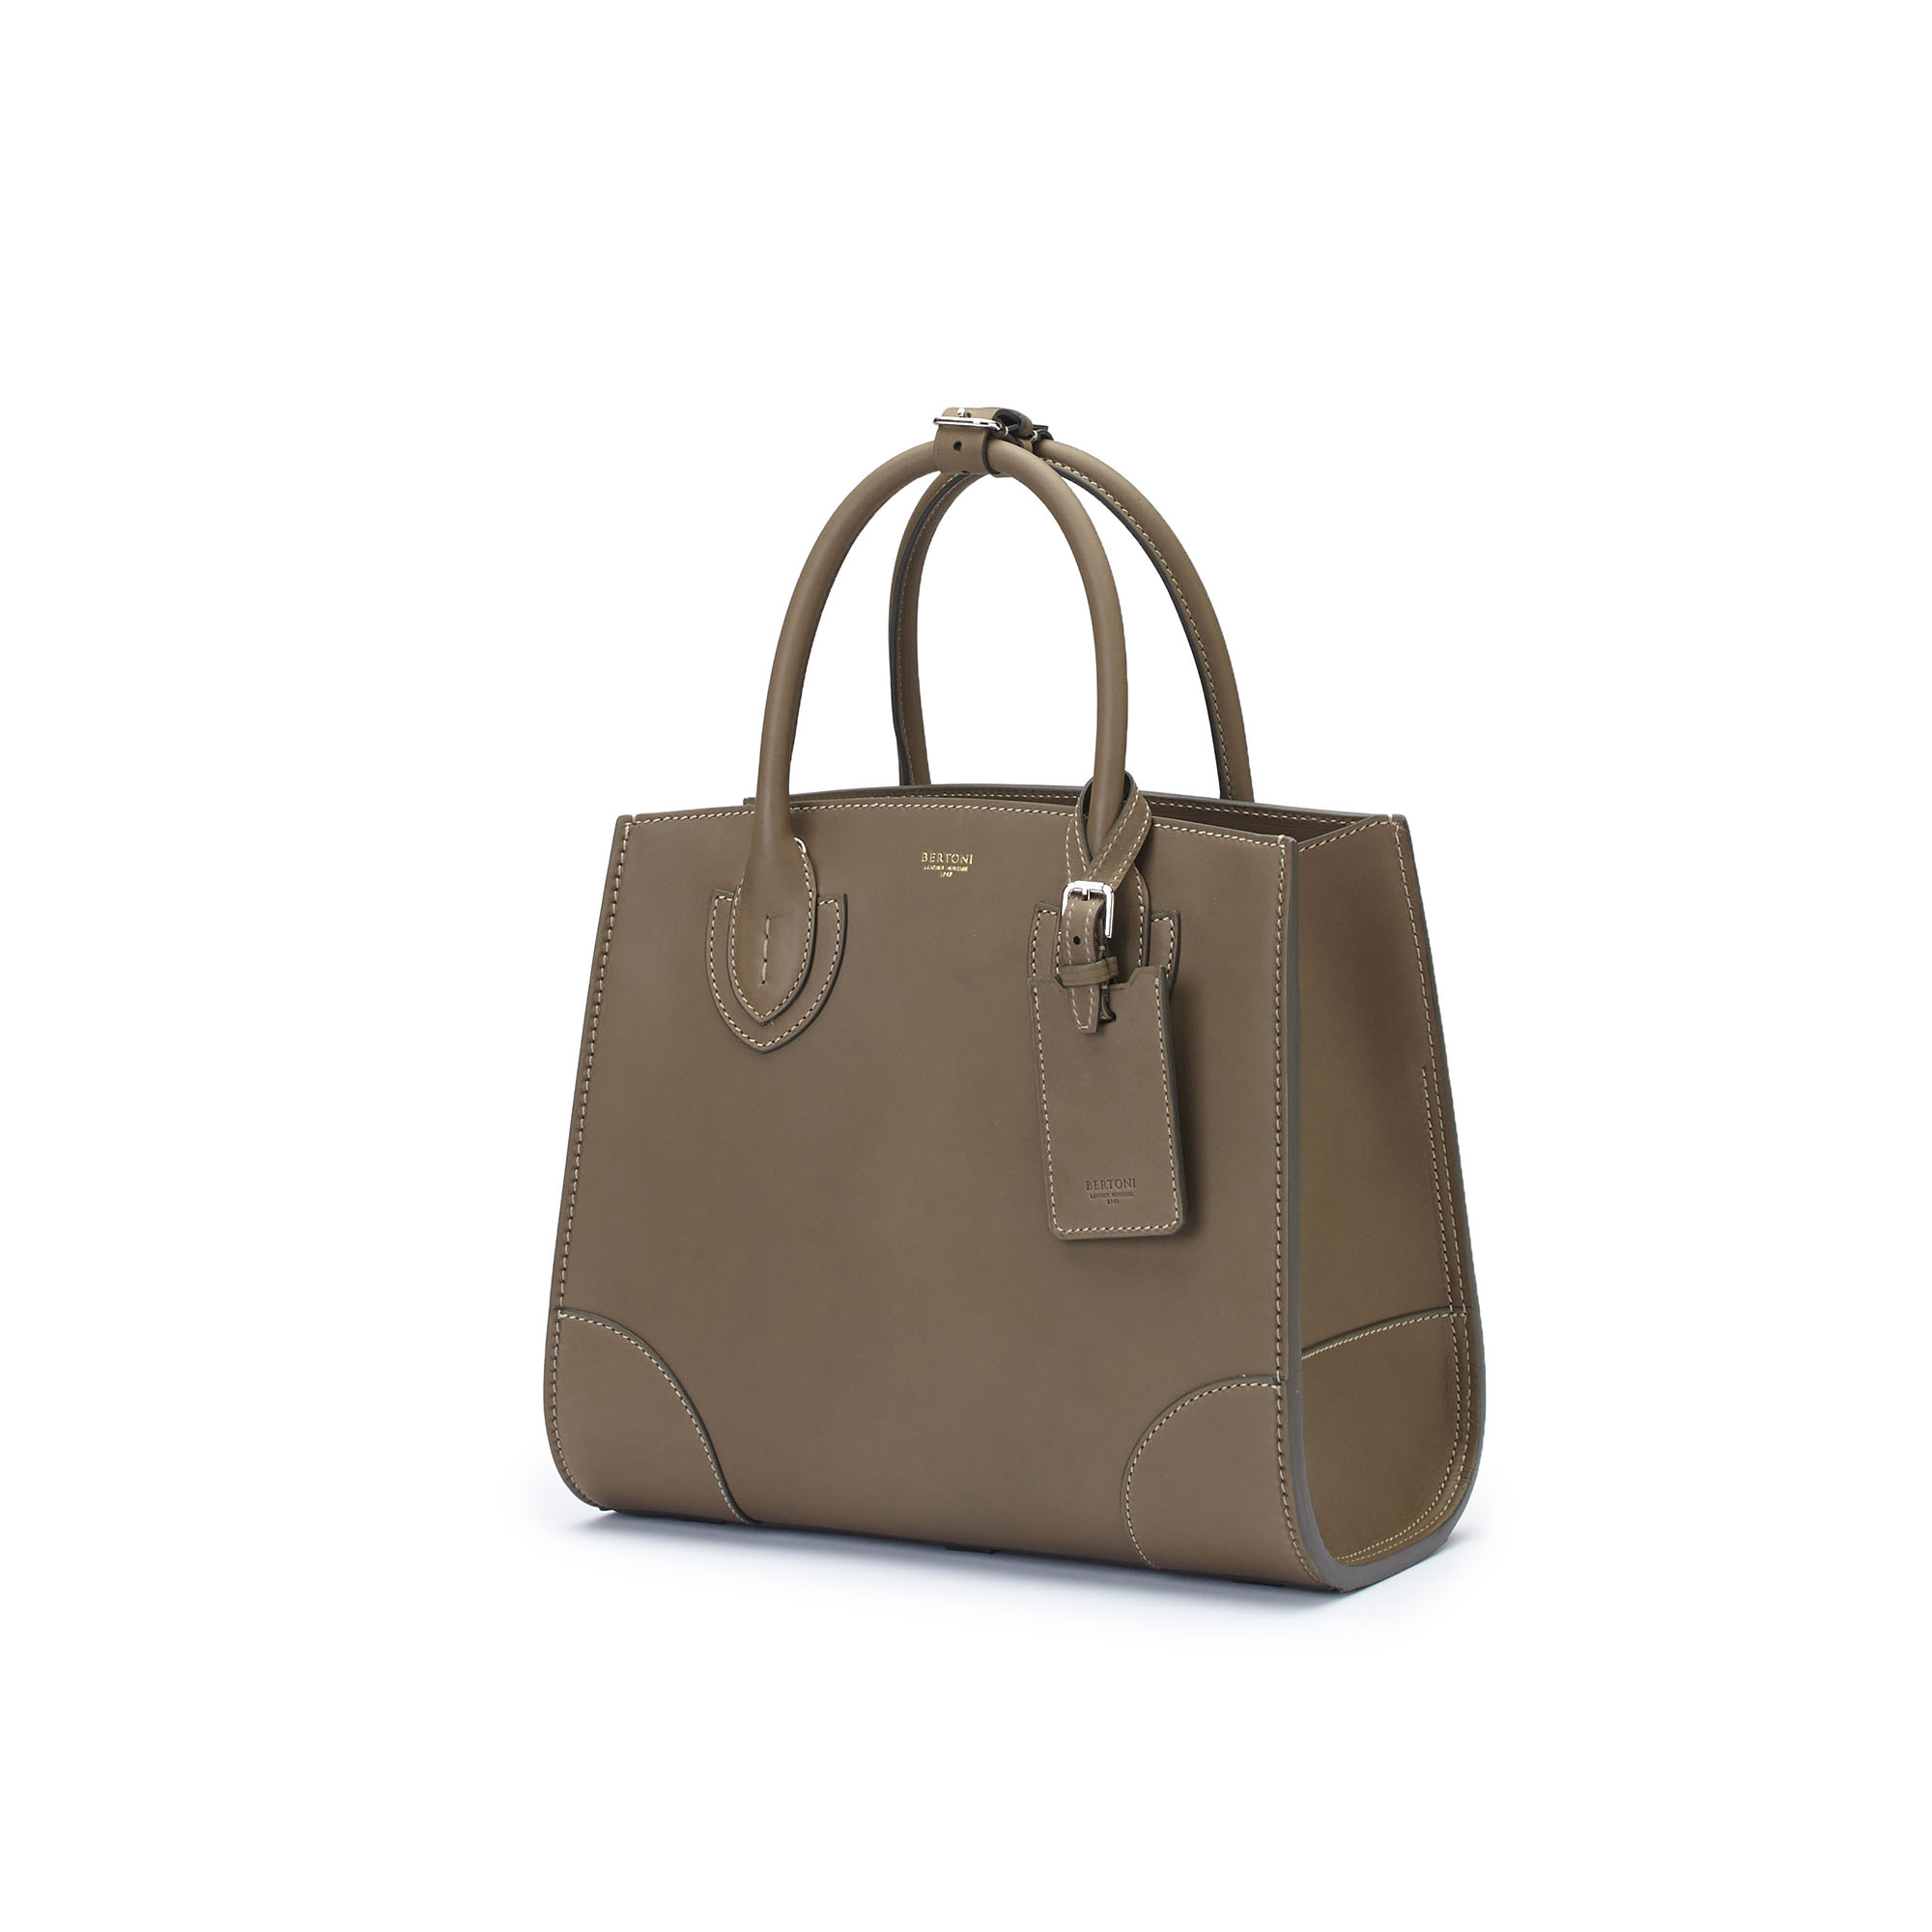 The military green french calf Darcy bag by Bertoni 1949 02